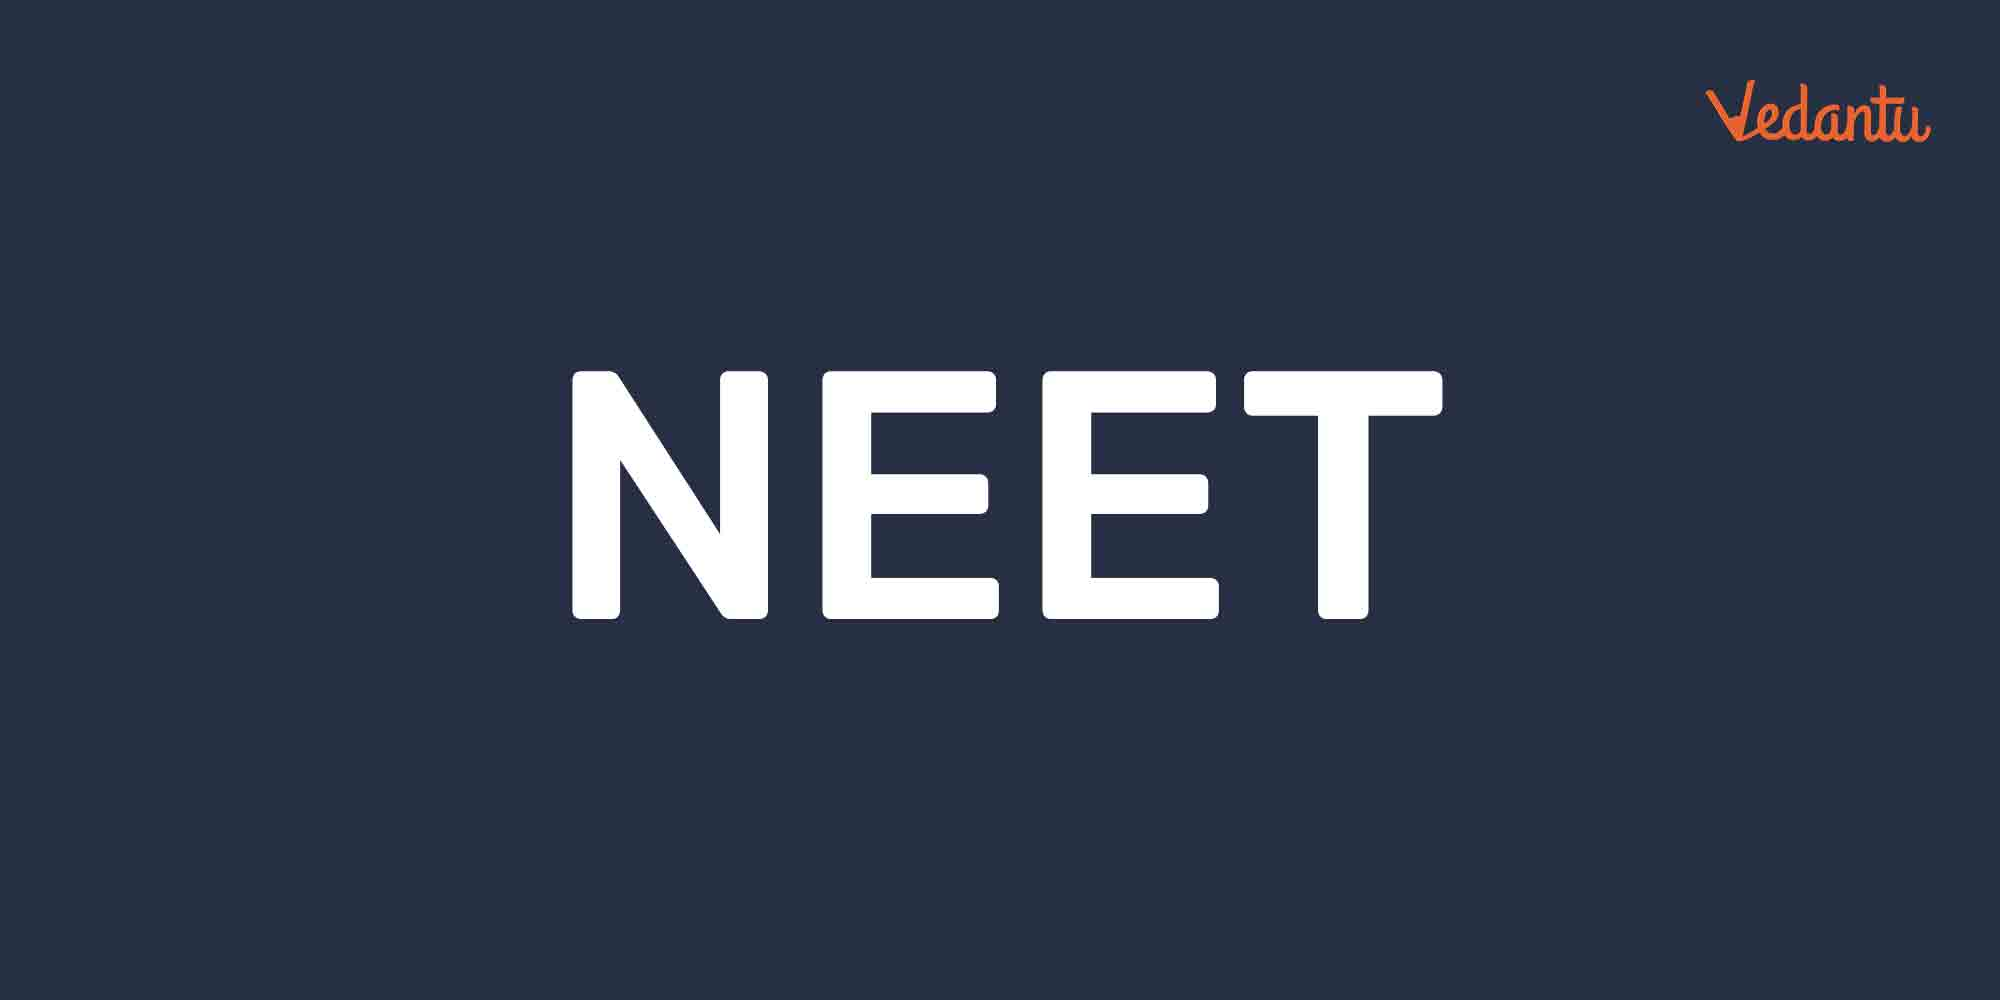 How Can I Prepare For The AIIMS, NEET and JIPMER in 4 Months?